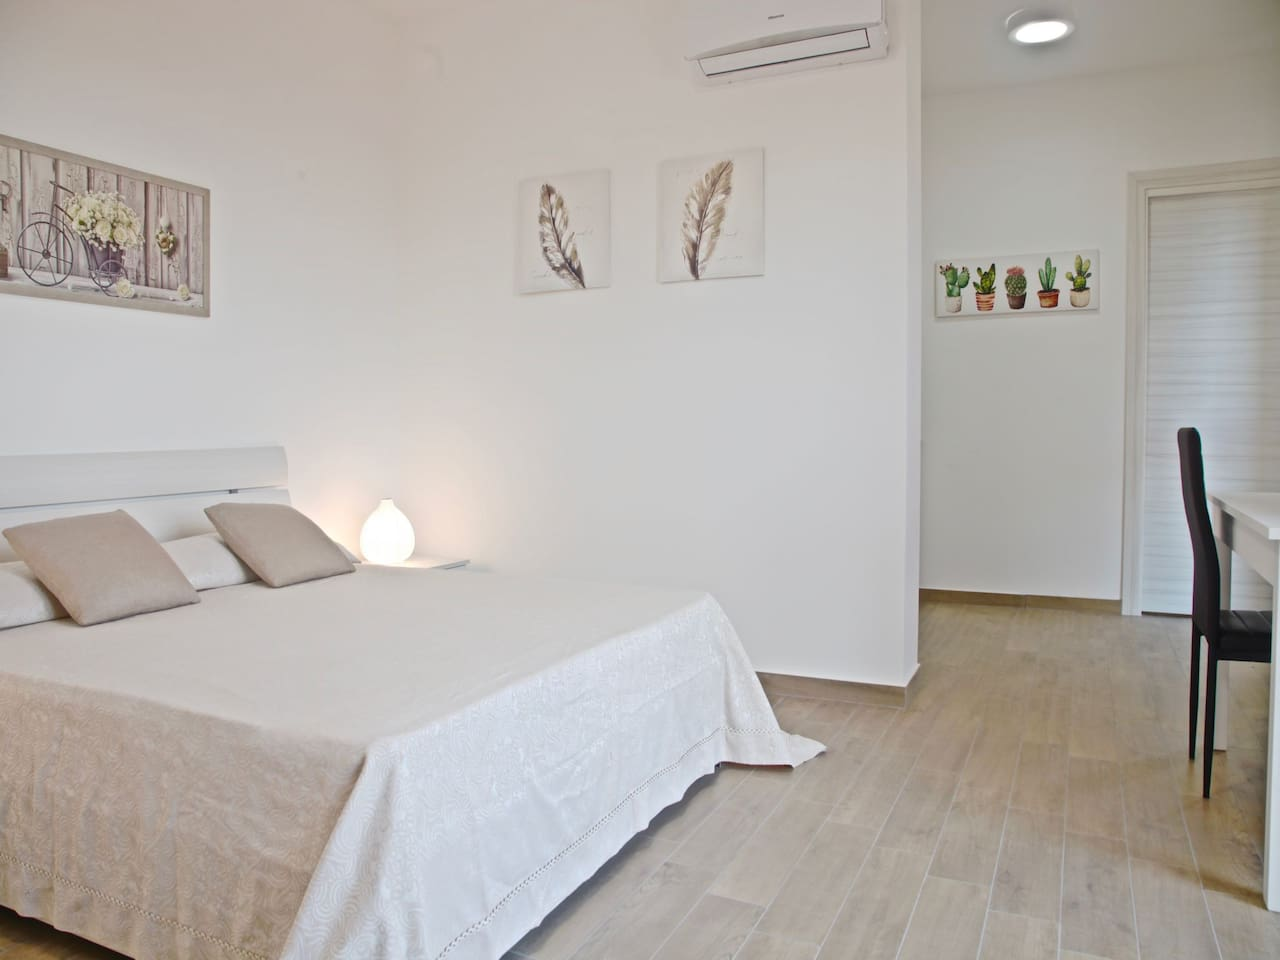 Bedroom : king size bed, interior details, large wardrobe, air conditioner, work space. Camera da letto : letto matrimoniale,  dettagli interni, ampia guardaroba, aria condizionata (A/C), scrivania.